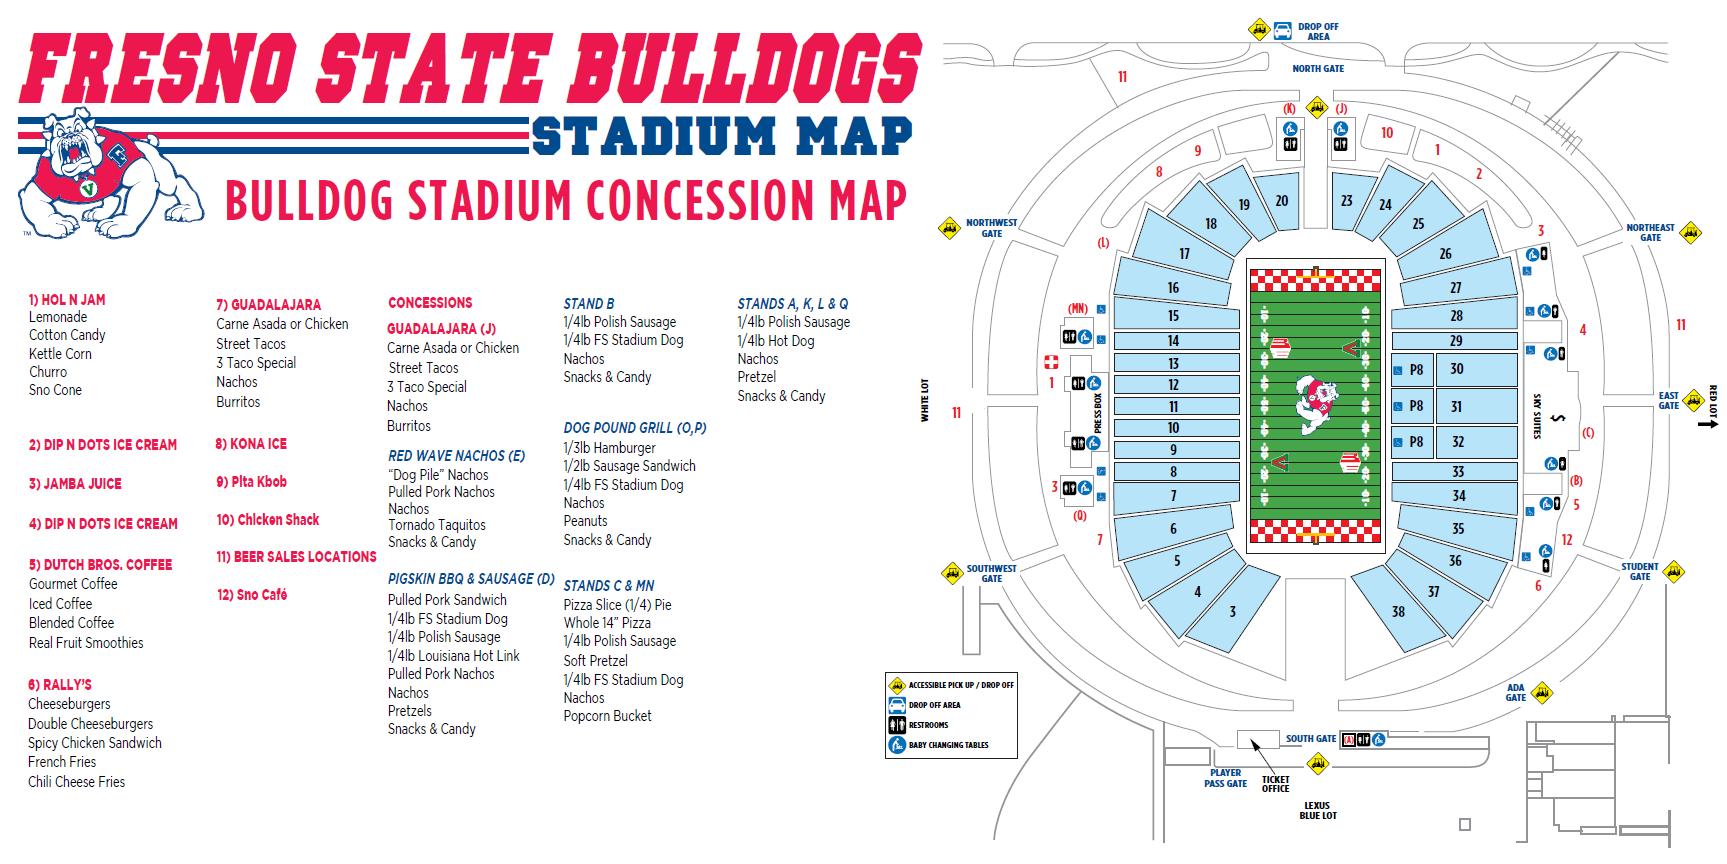 Bulldog Stadium Game Day Guide: Sept. 29 - Fresno State ... on fresno state school map, fresno state football field, penn state stadium map, san jose state stadium map, fresno state football stadium, fresno state stadium chairs, fresno state stadium seating chart, fresno state stadium expansion, ball state stadium map, fresno state parking lot map, oregon state stadium map, fresno state stadium capacity, washington state stadium map, fresno state bulldog stadium, fresno state concert hall map, fresno state building map, michigan state stadium map, nc state stadium map, fresno state football seating, georgia state stadium map,